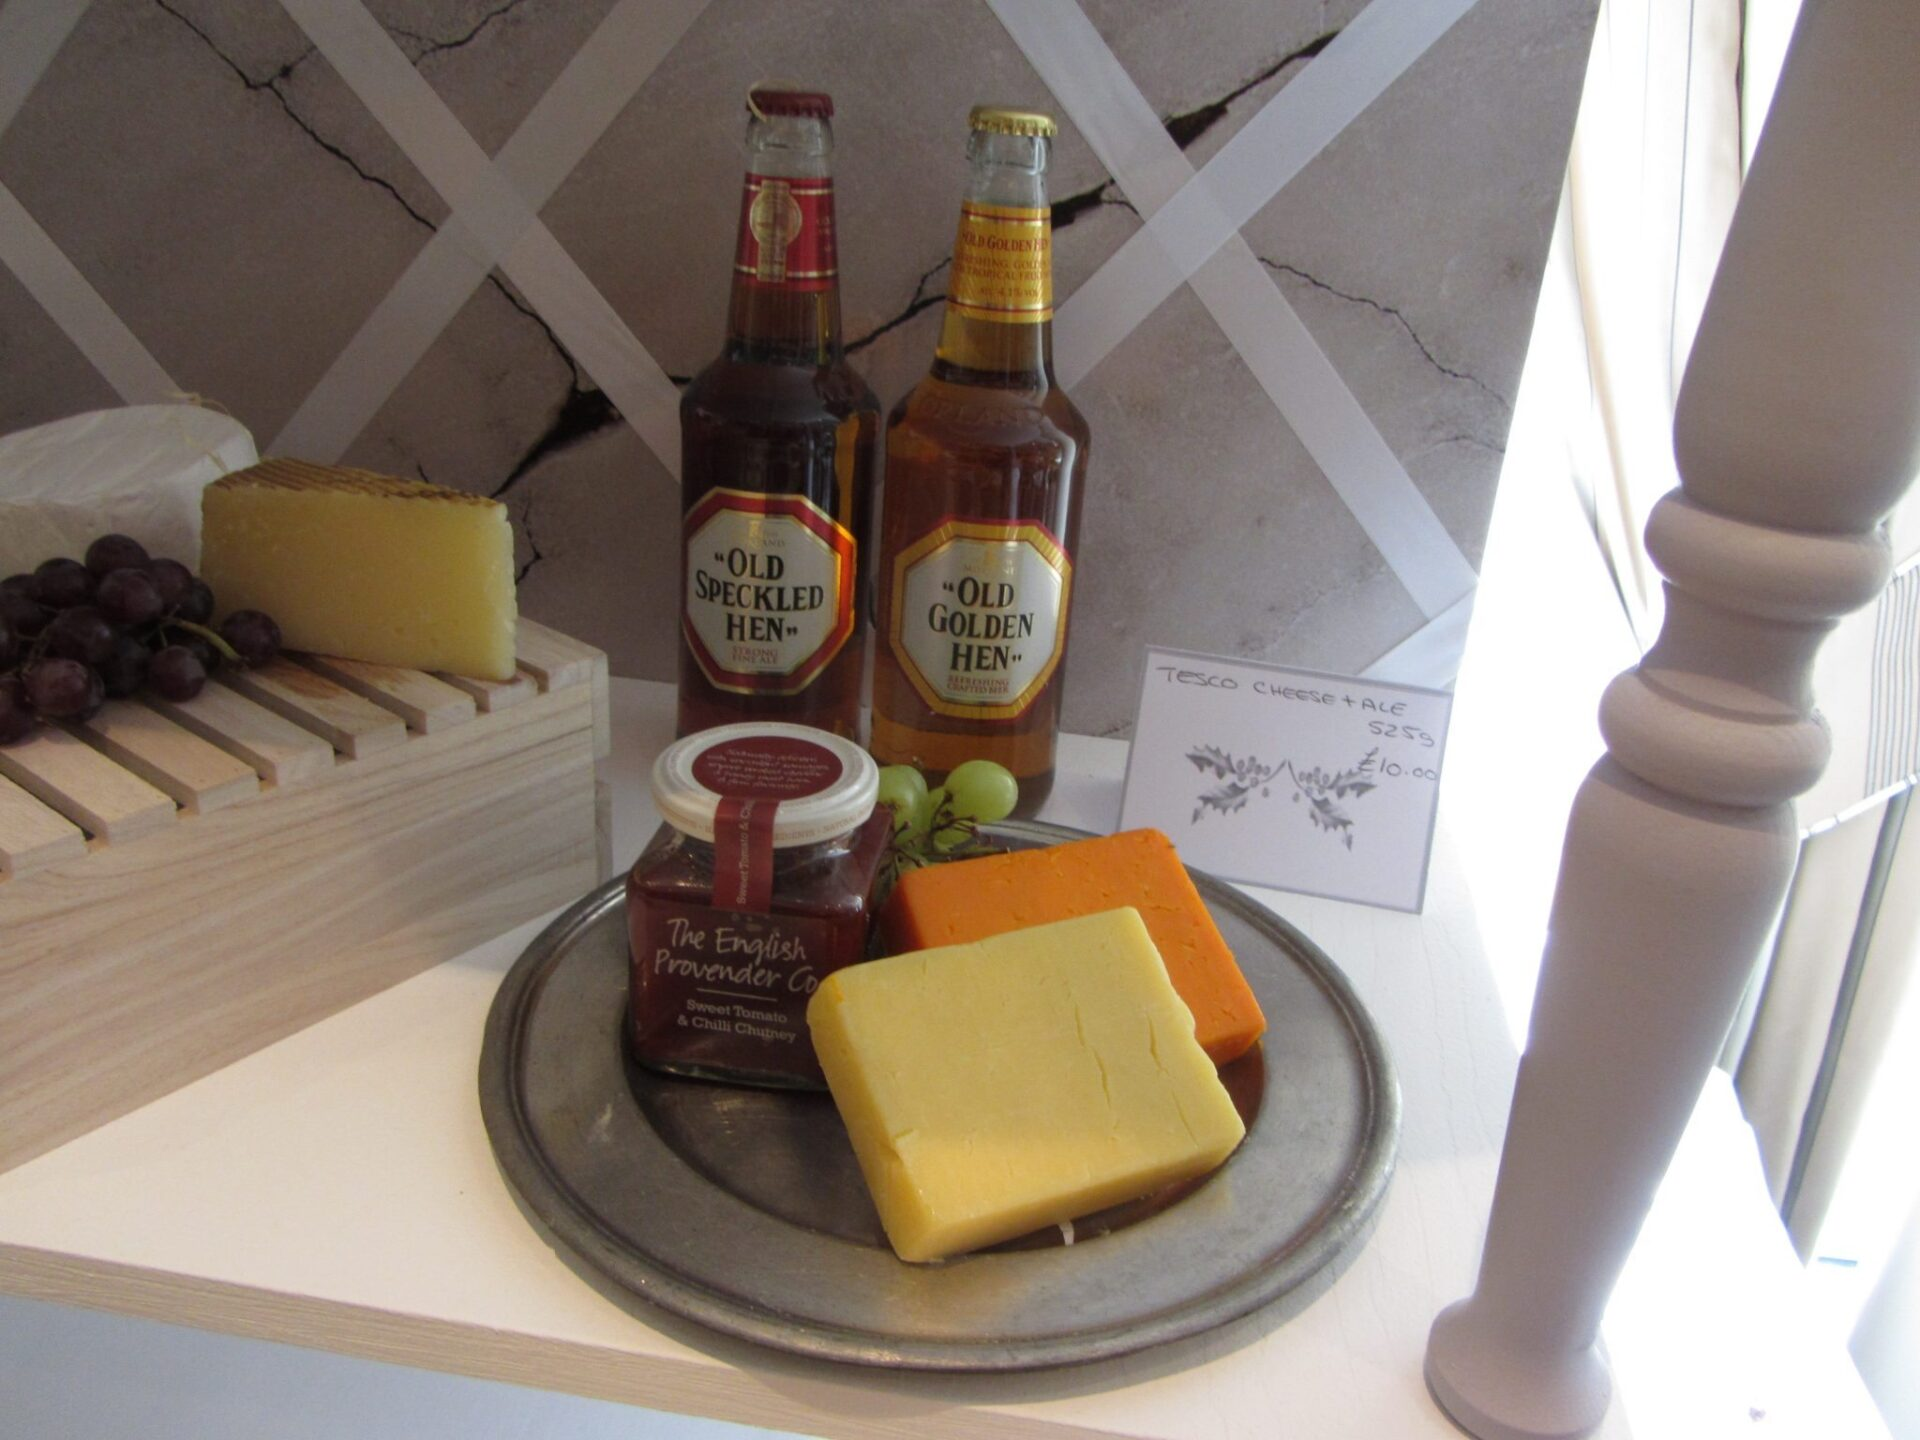 Xmas Gift Ideas for Men: Cheese and Ale